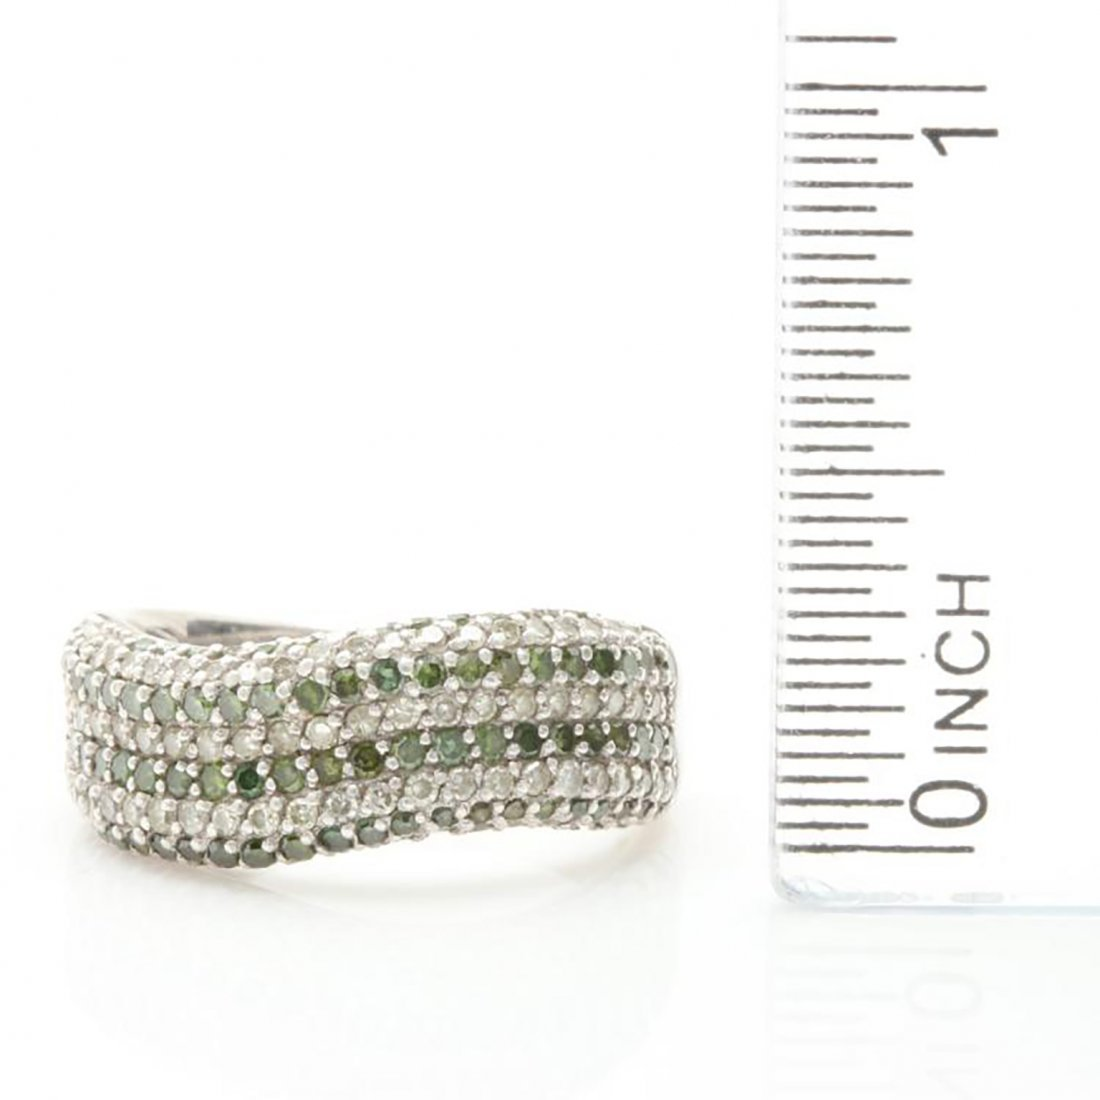 Green Diamond Ring with Accents in Sterling Silver - 2